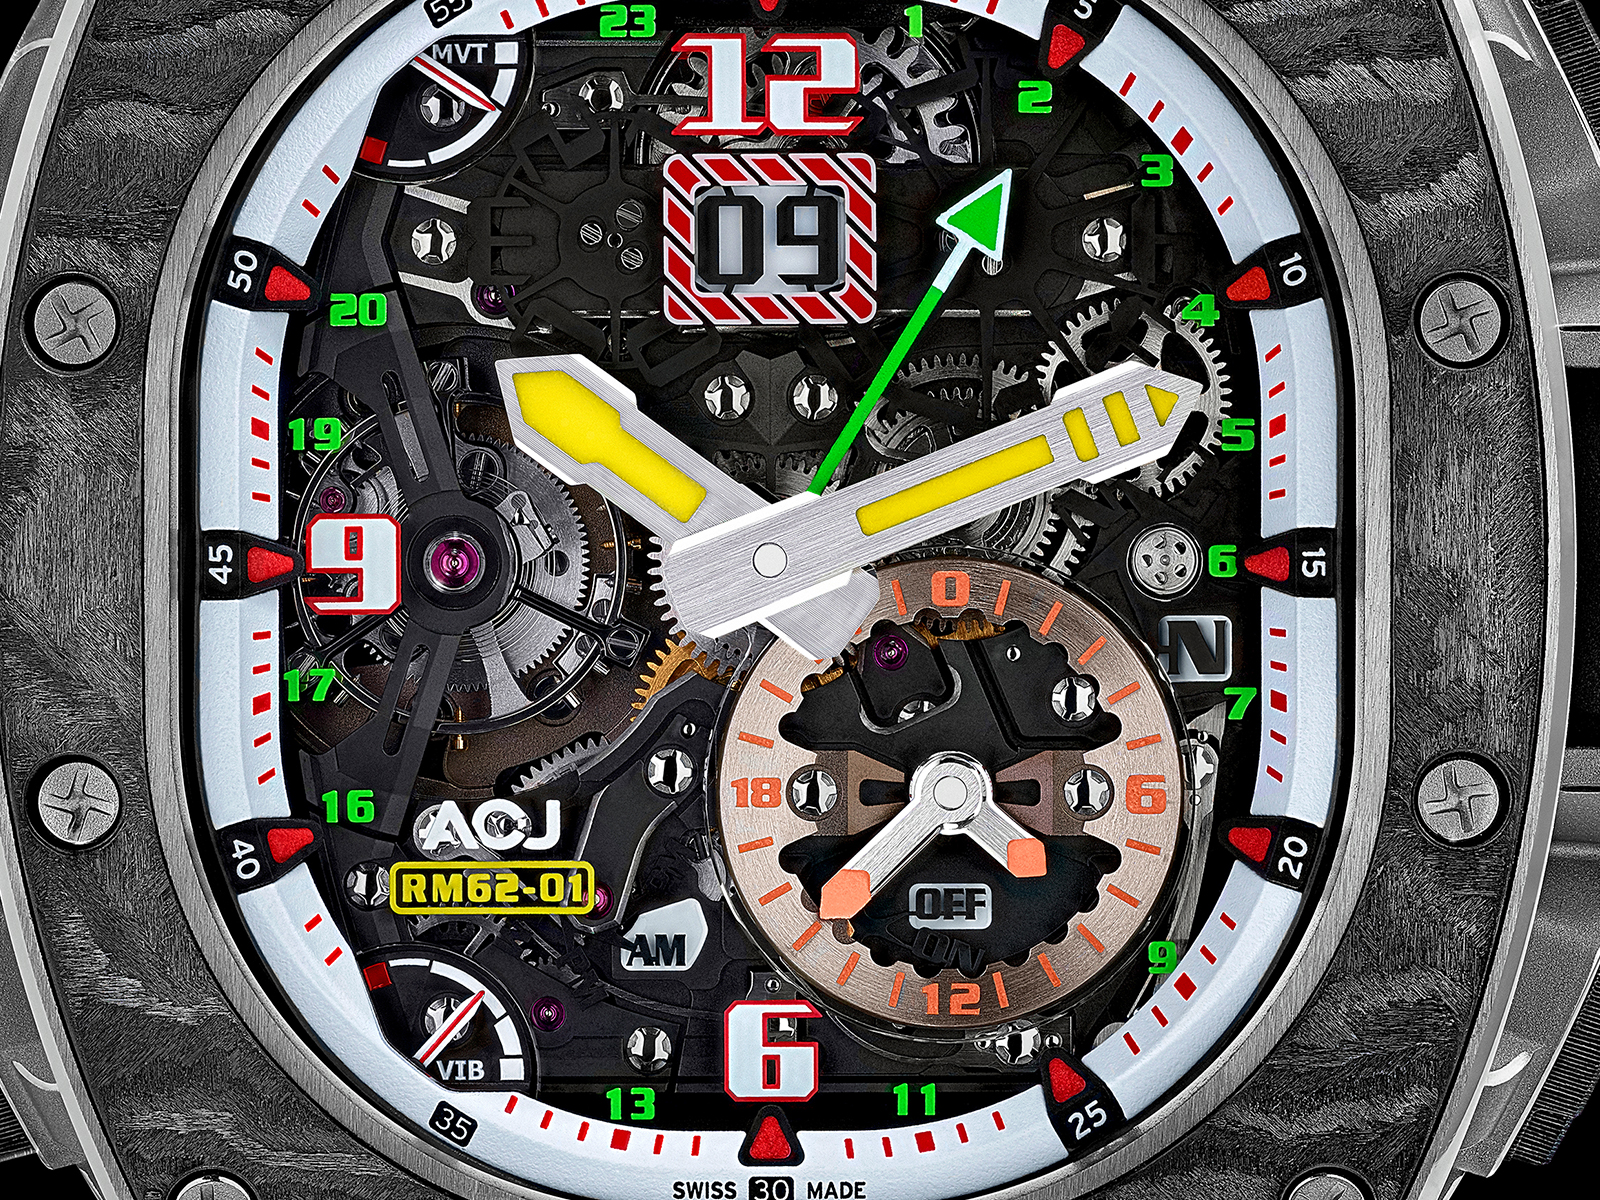 richard-mille-rm-62-01-tourbillon-vibrating-alarm-airbus-corporate-jets-3.jpg